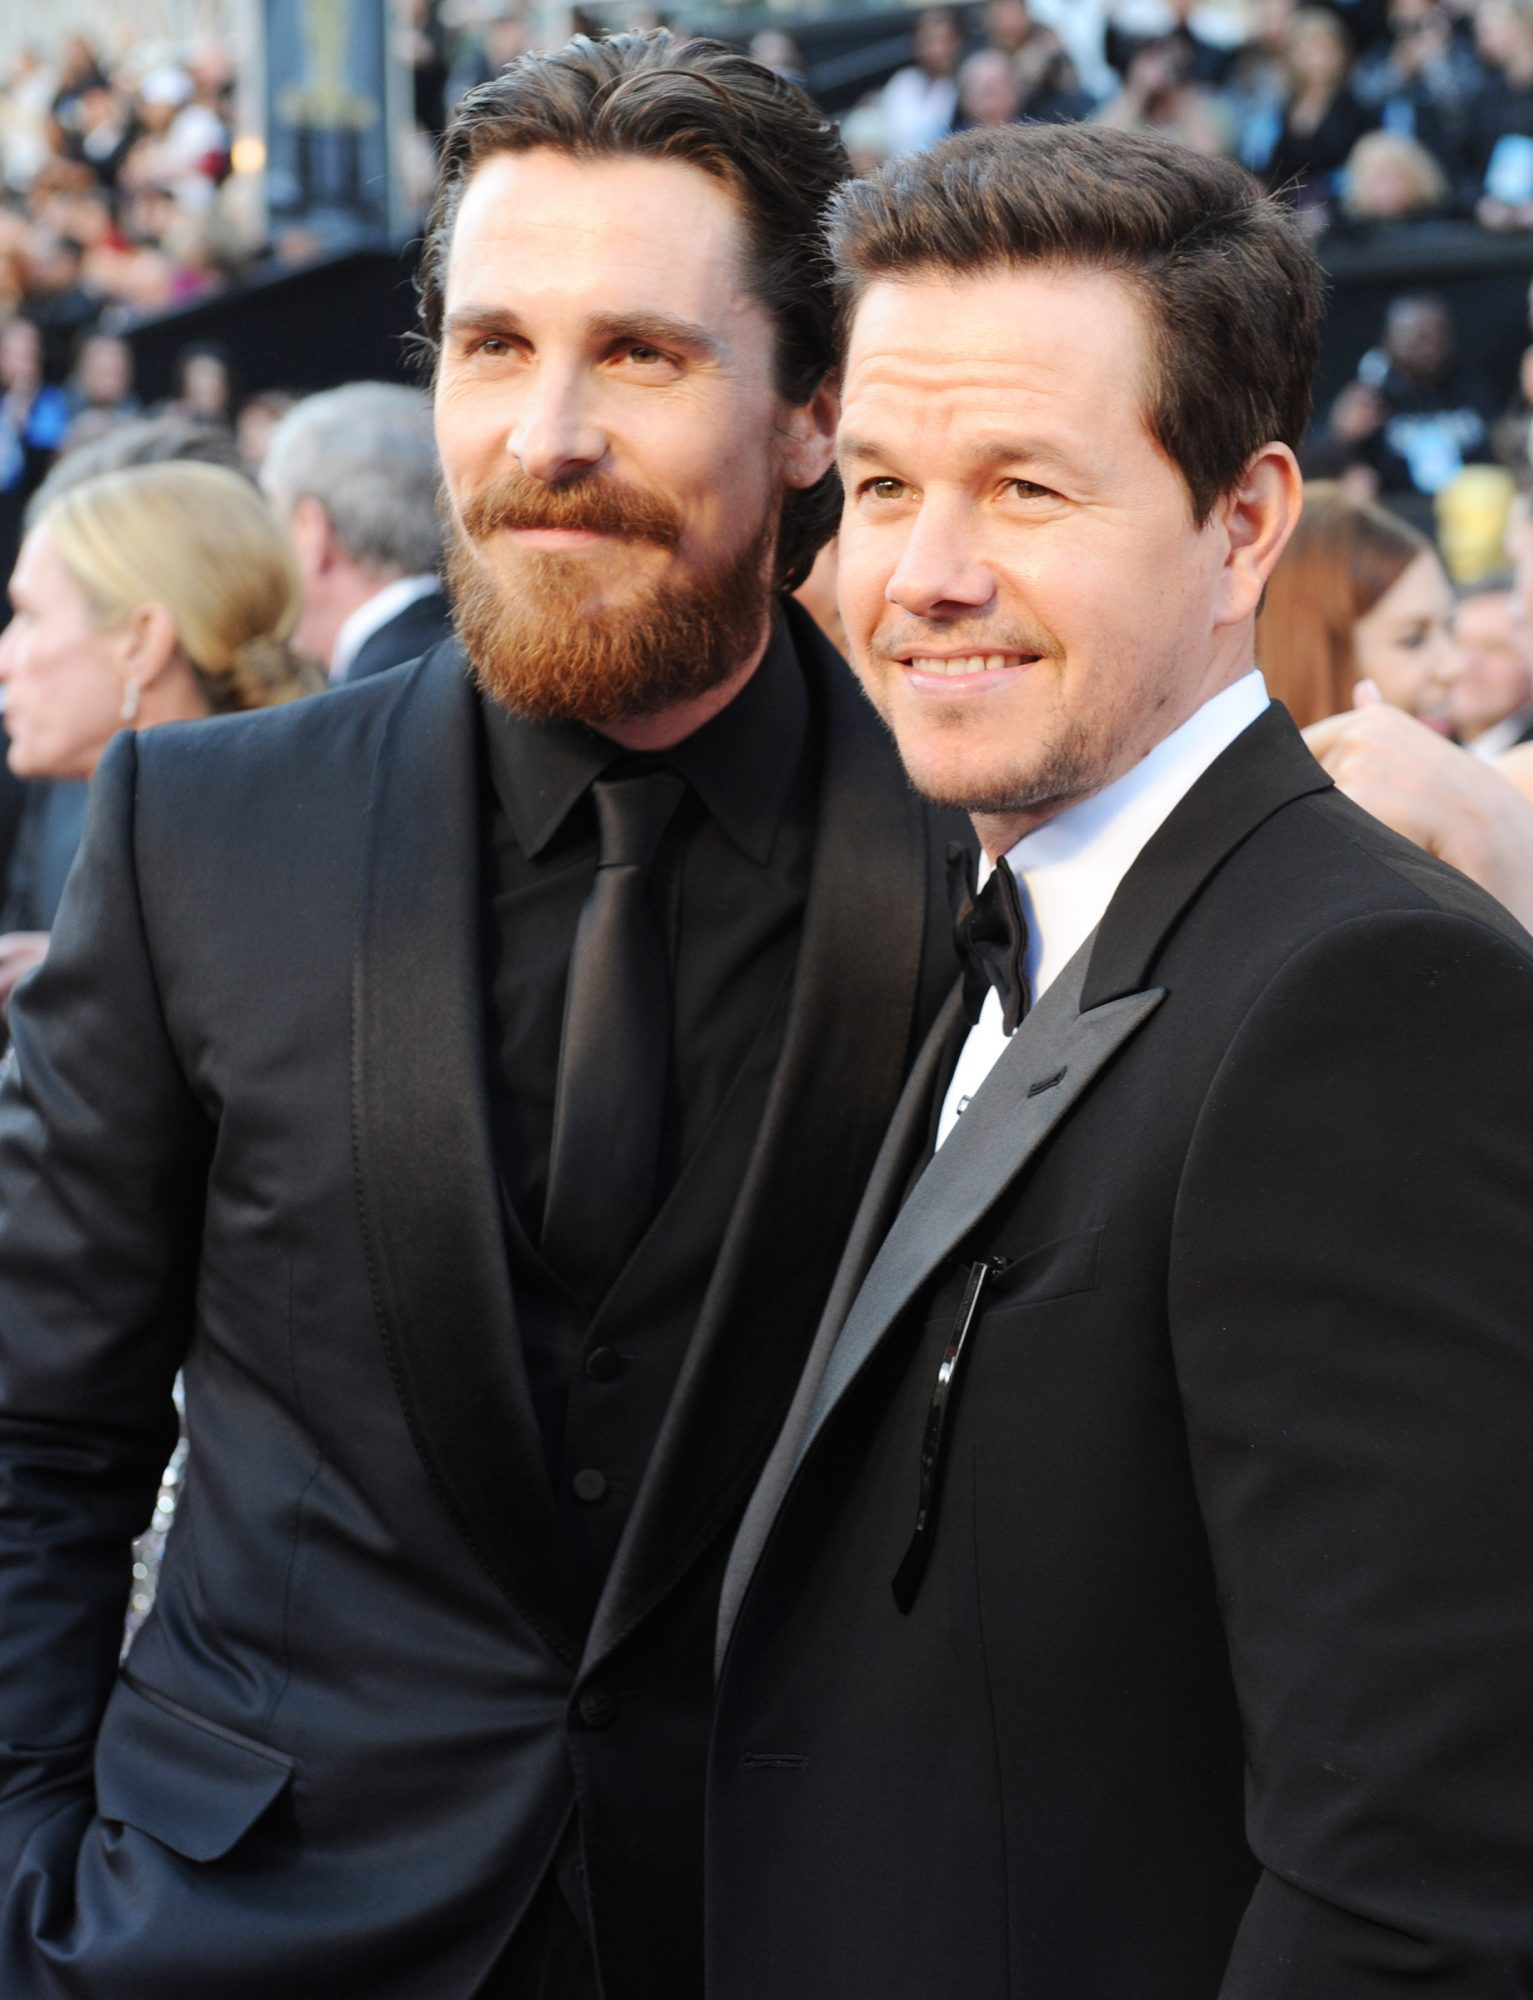 2011 Academy Awards, Christian Bale, Mark Wahlberg